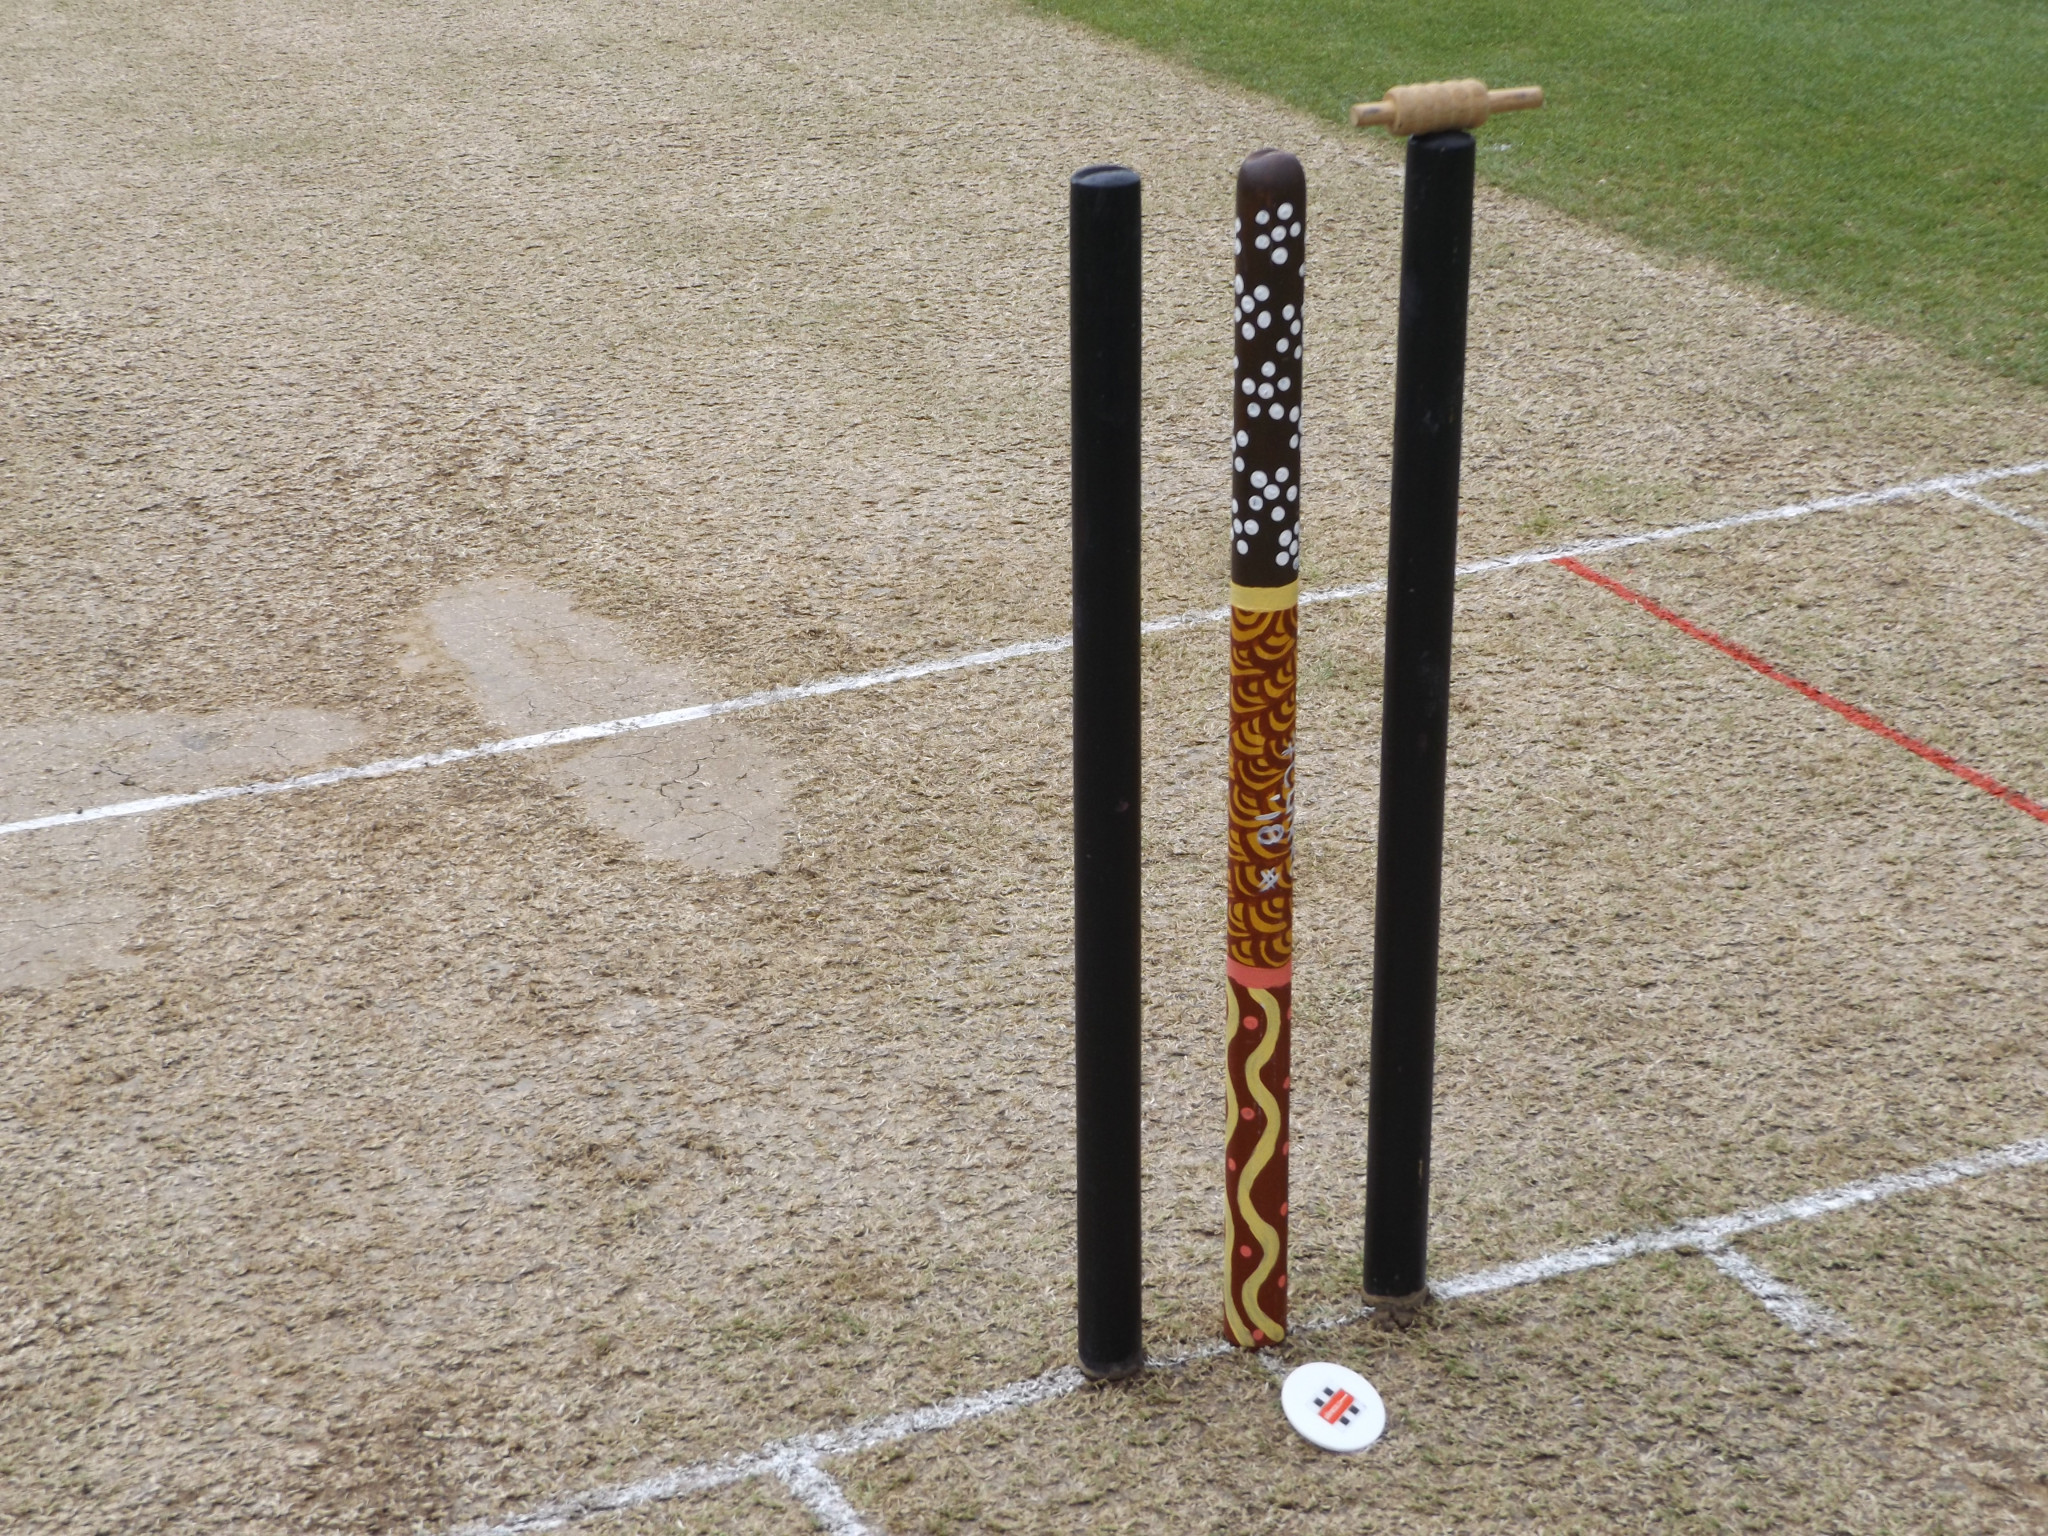 The middle stump featuring indigenous artwork ©Phil Barker